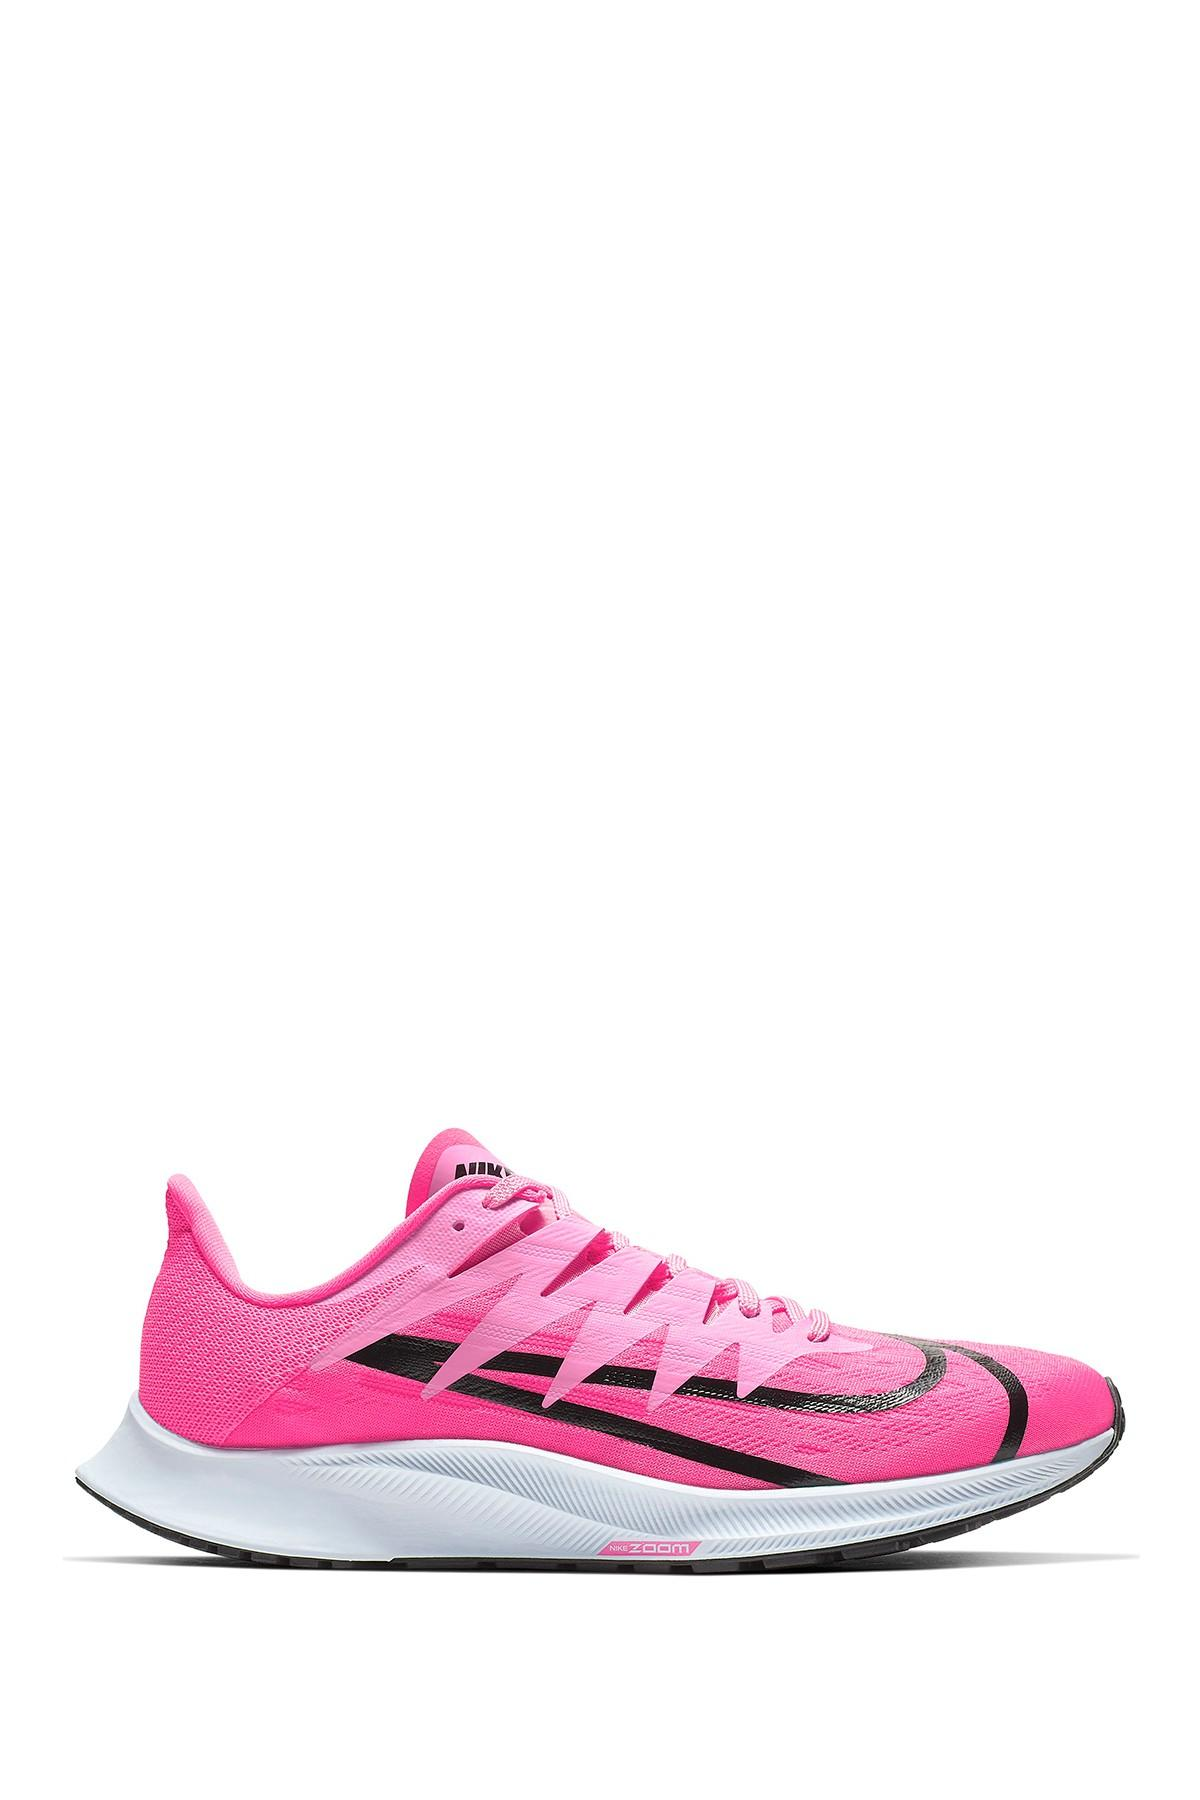 4087ee73d632c Lyst - Nike Zoom Rival Fly Sneakers in Pink